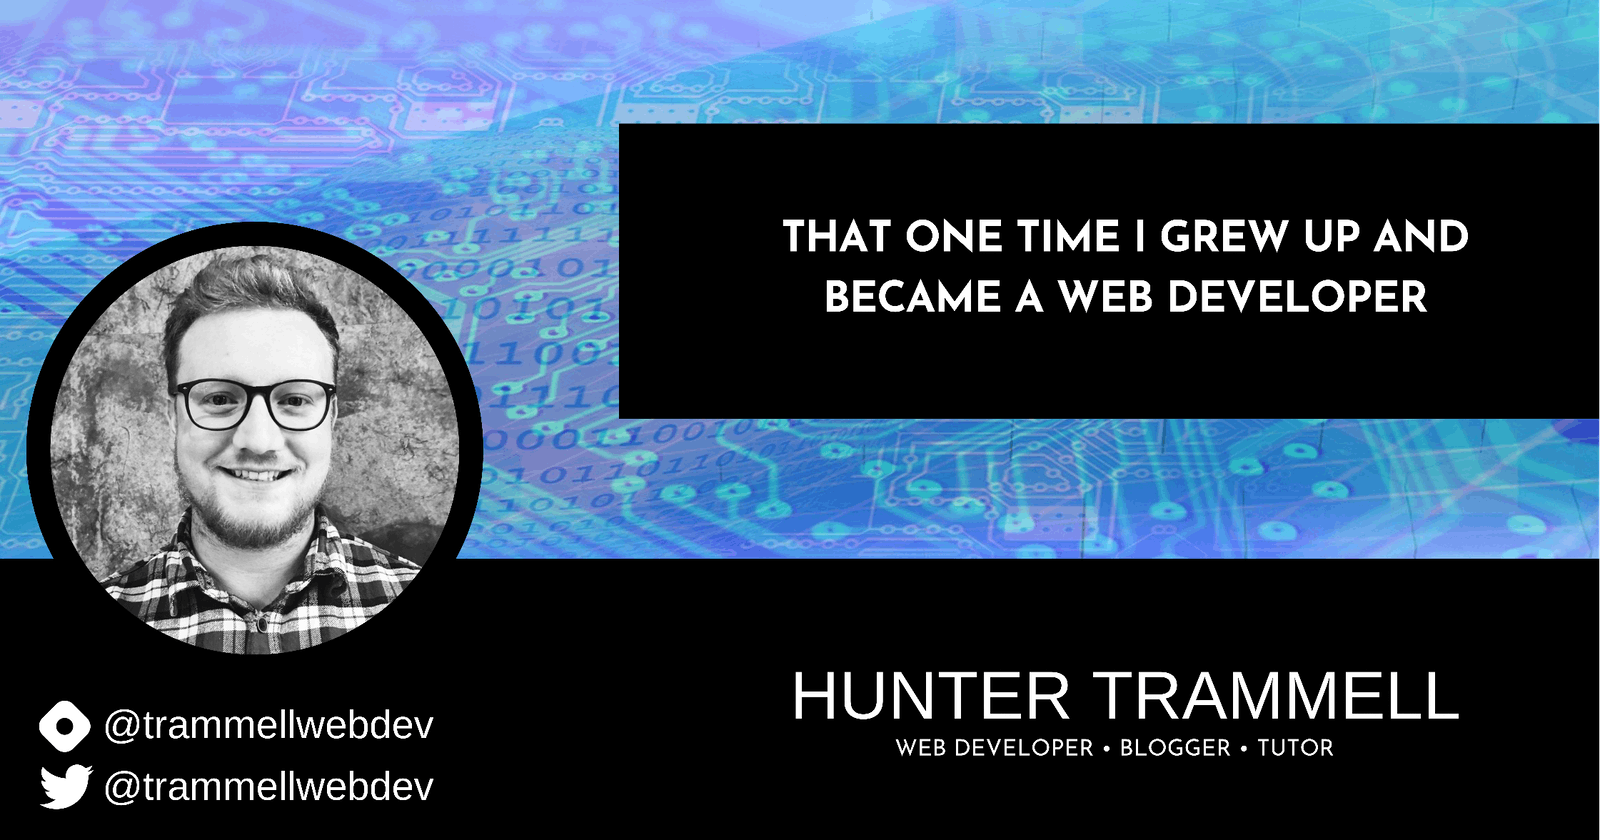 That One Time I Grew Up And Became A Web Developer